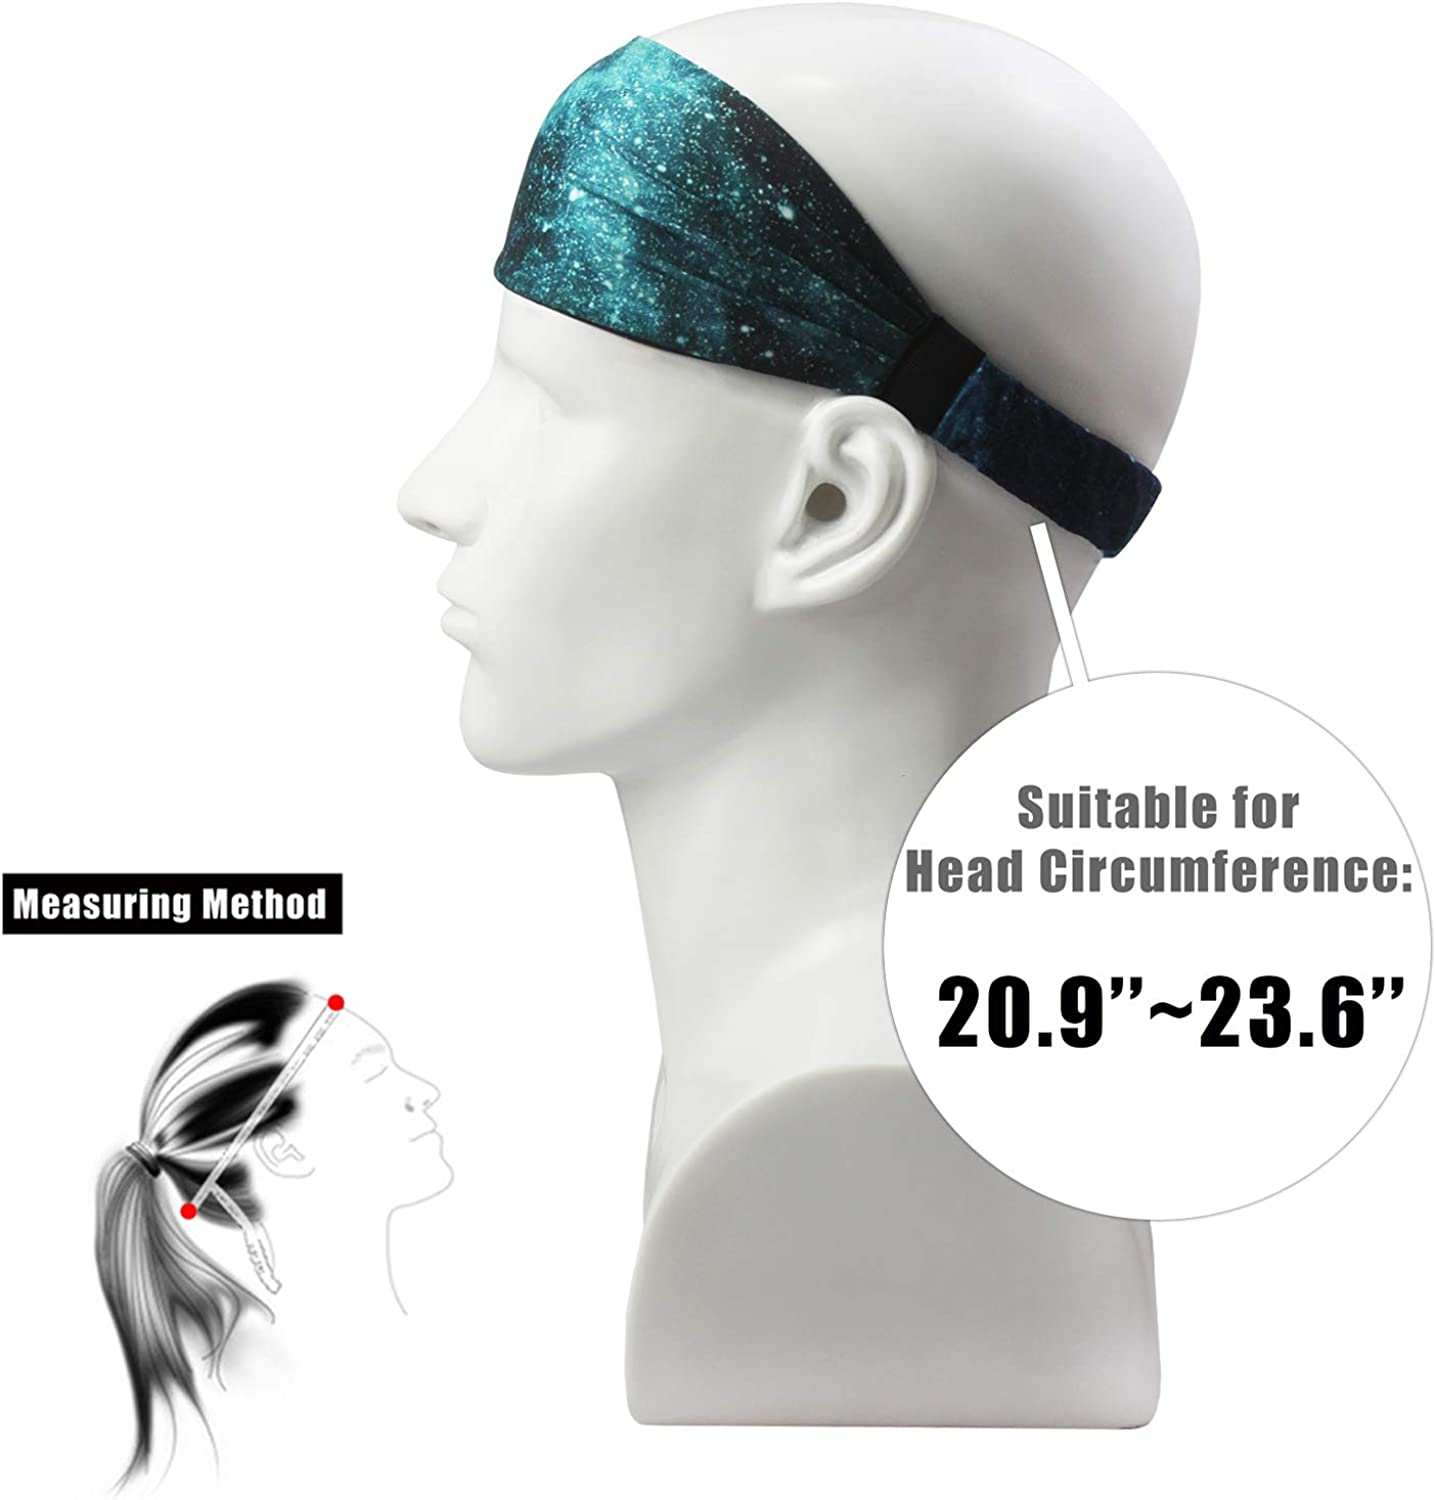 Obacle Headbands for Men Women Sweat Bands Headbands Non Slip Breatheable Durable Head Band Outdoor Sports Workout Yoga Gym Running Jogging Exercise 3 Pack